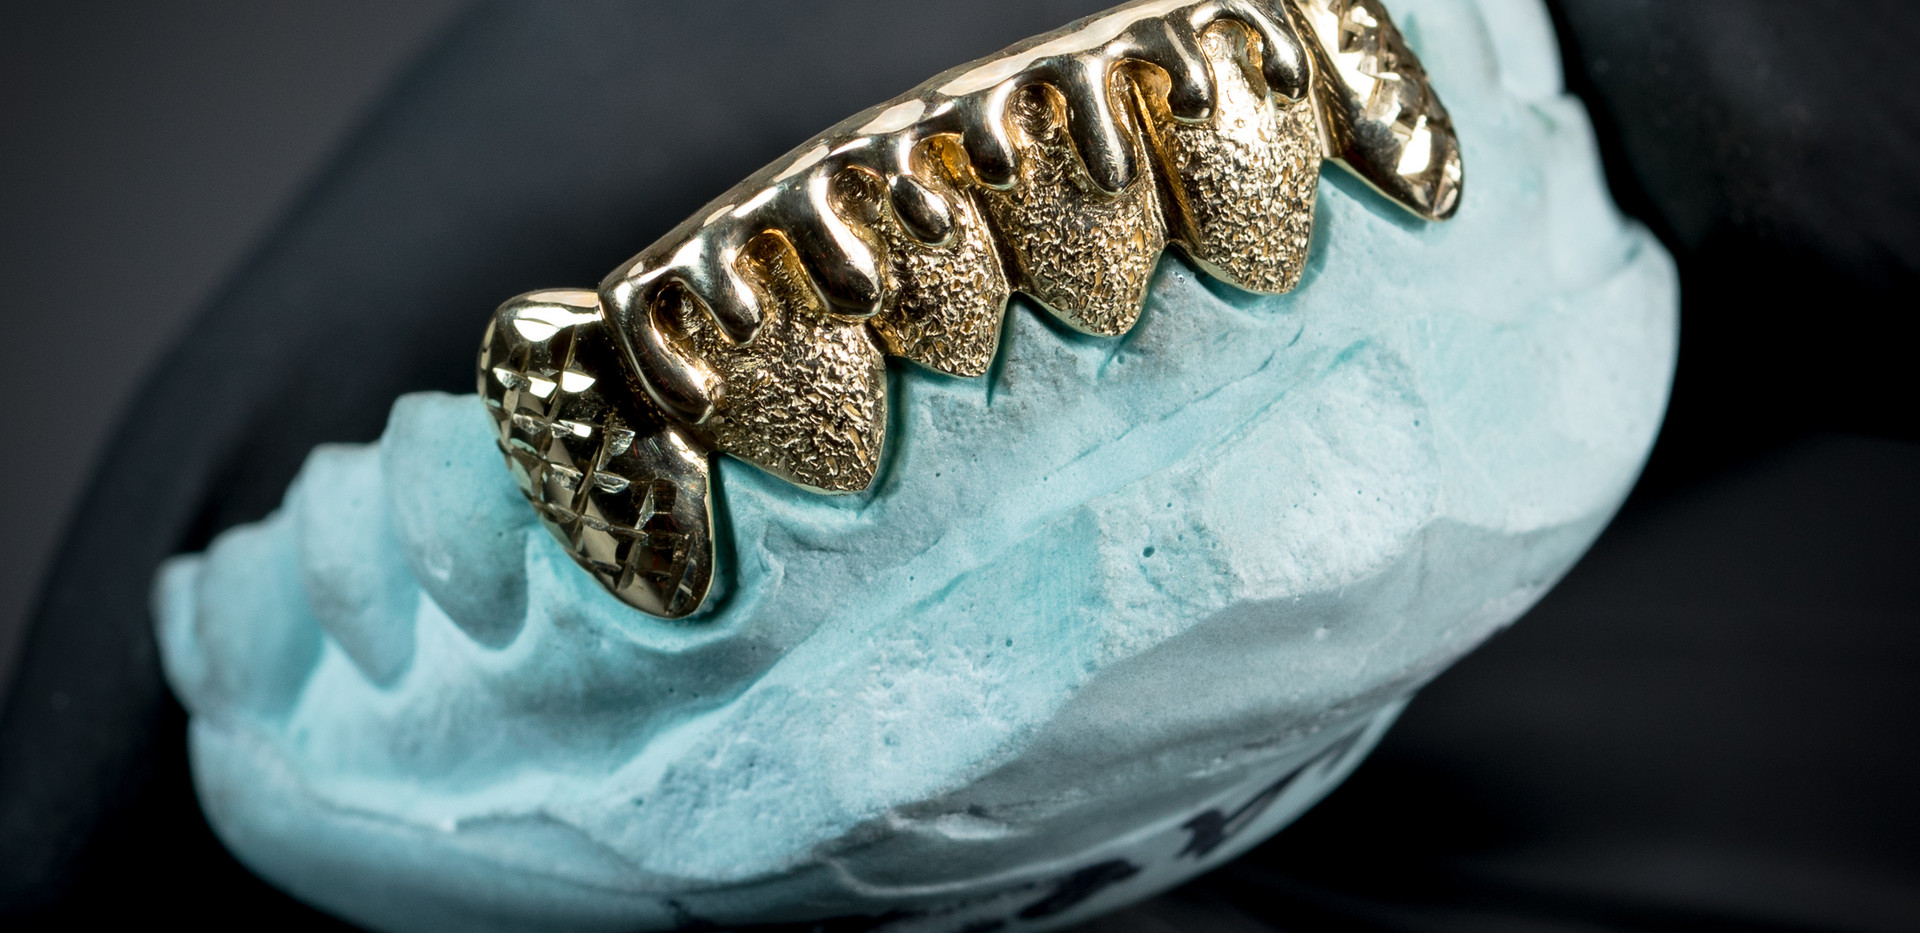 6 Tooth Dripping Grillz